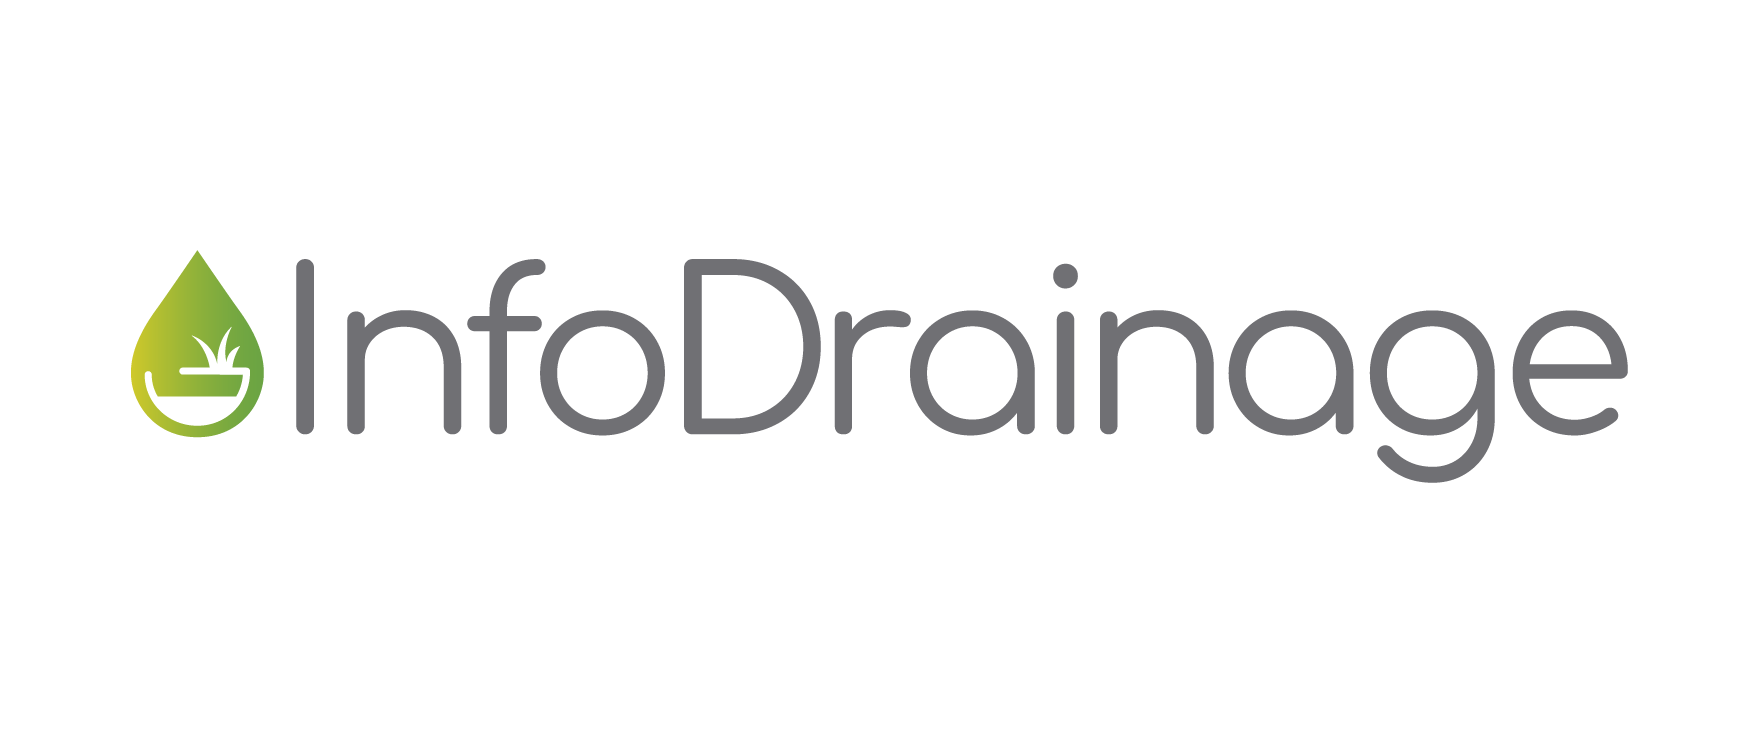 InfoDrainage 2020.2 Help Documentation